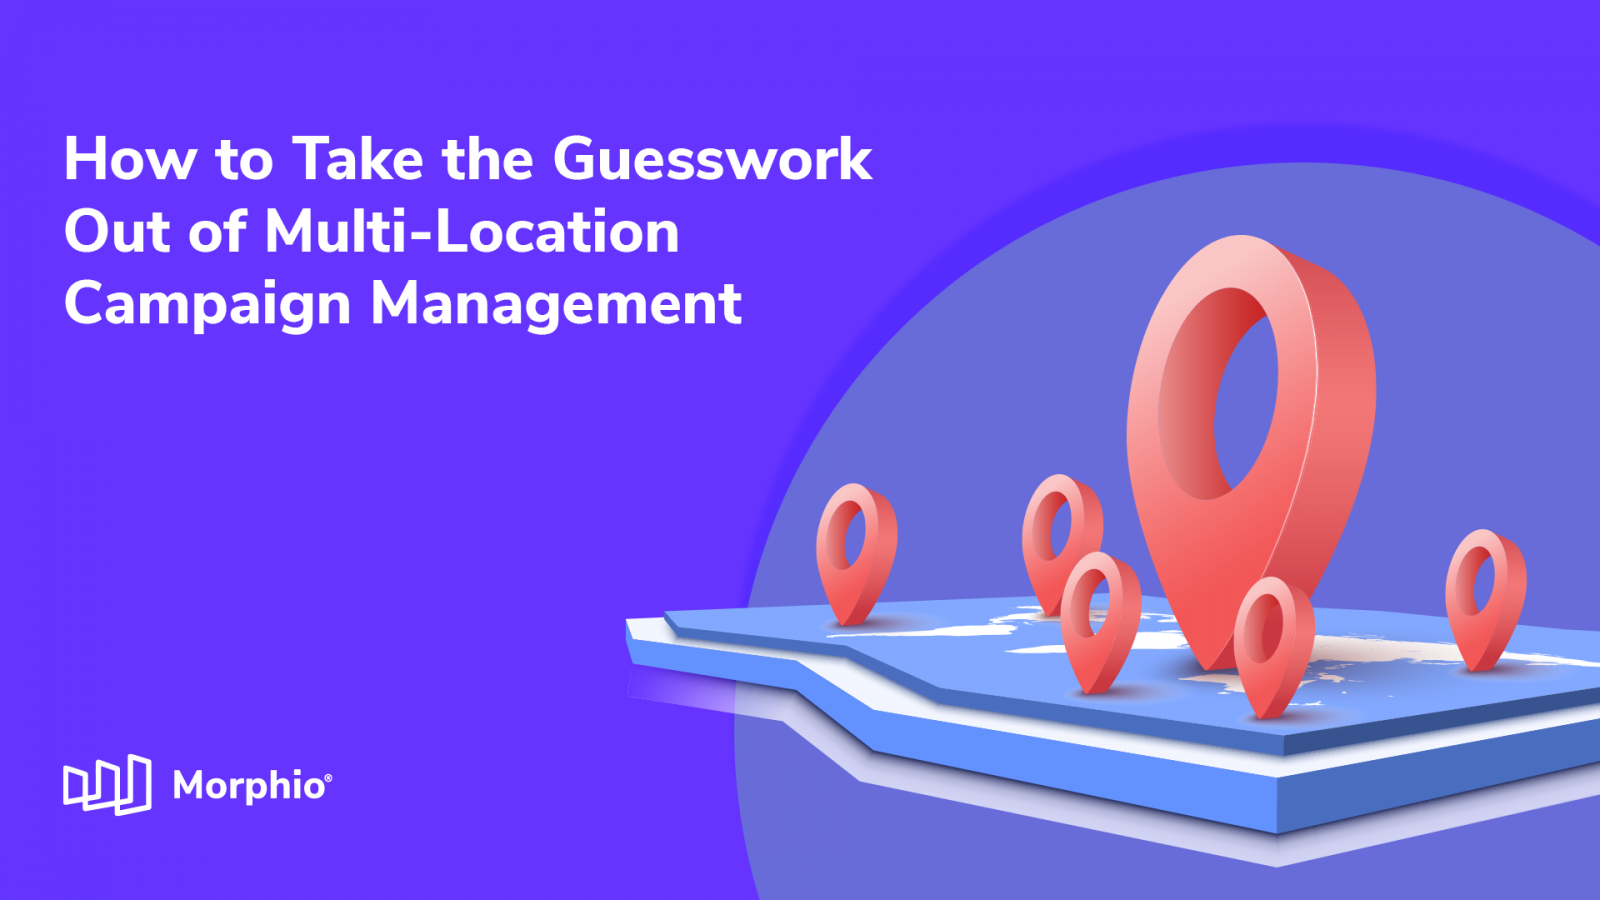 Morphio Takes the Guesswork (and Tedious Manual Labor) Out of Multi-Location Digital Campaign Management Featured Image